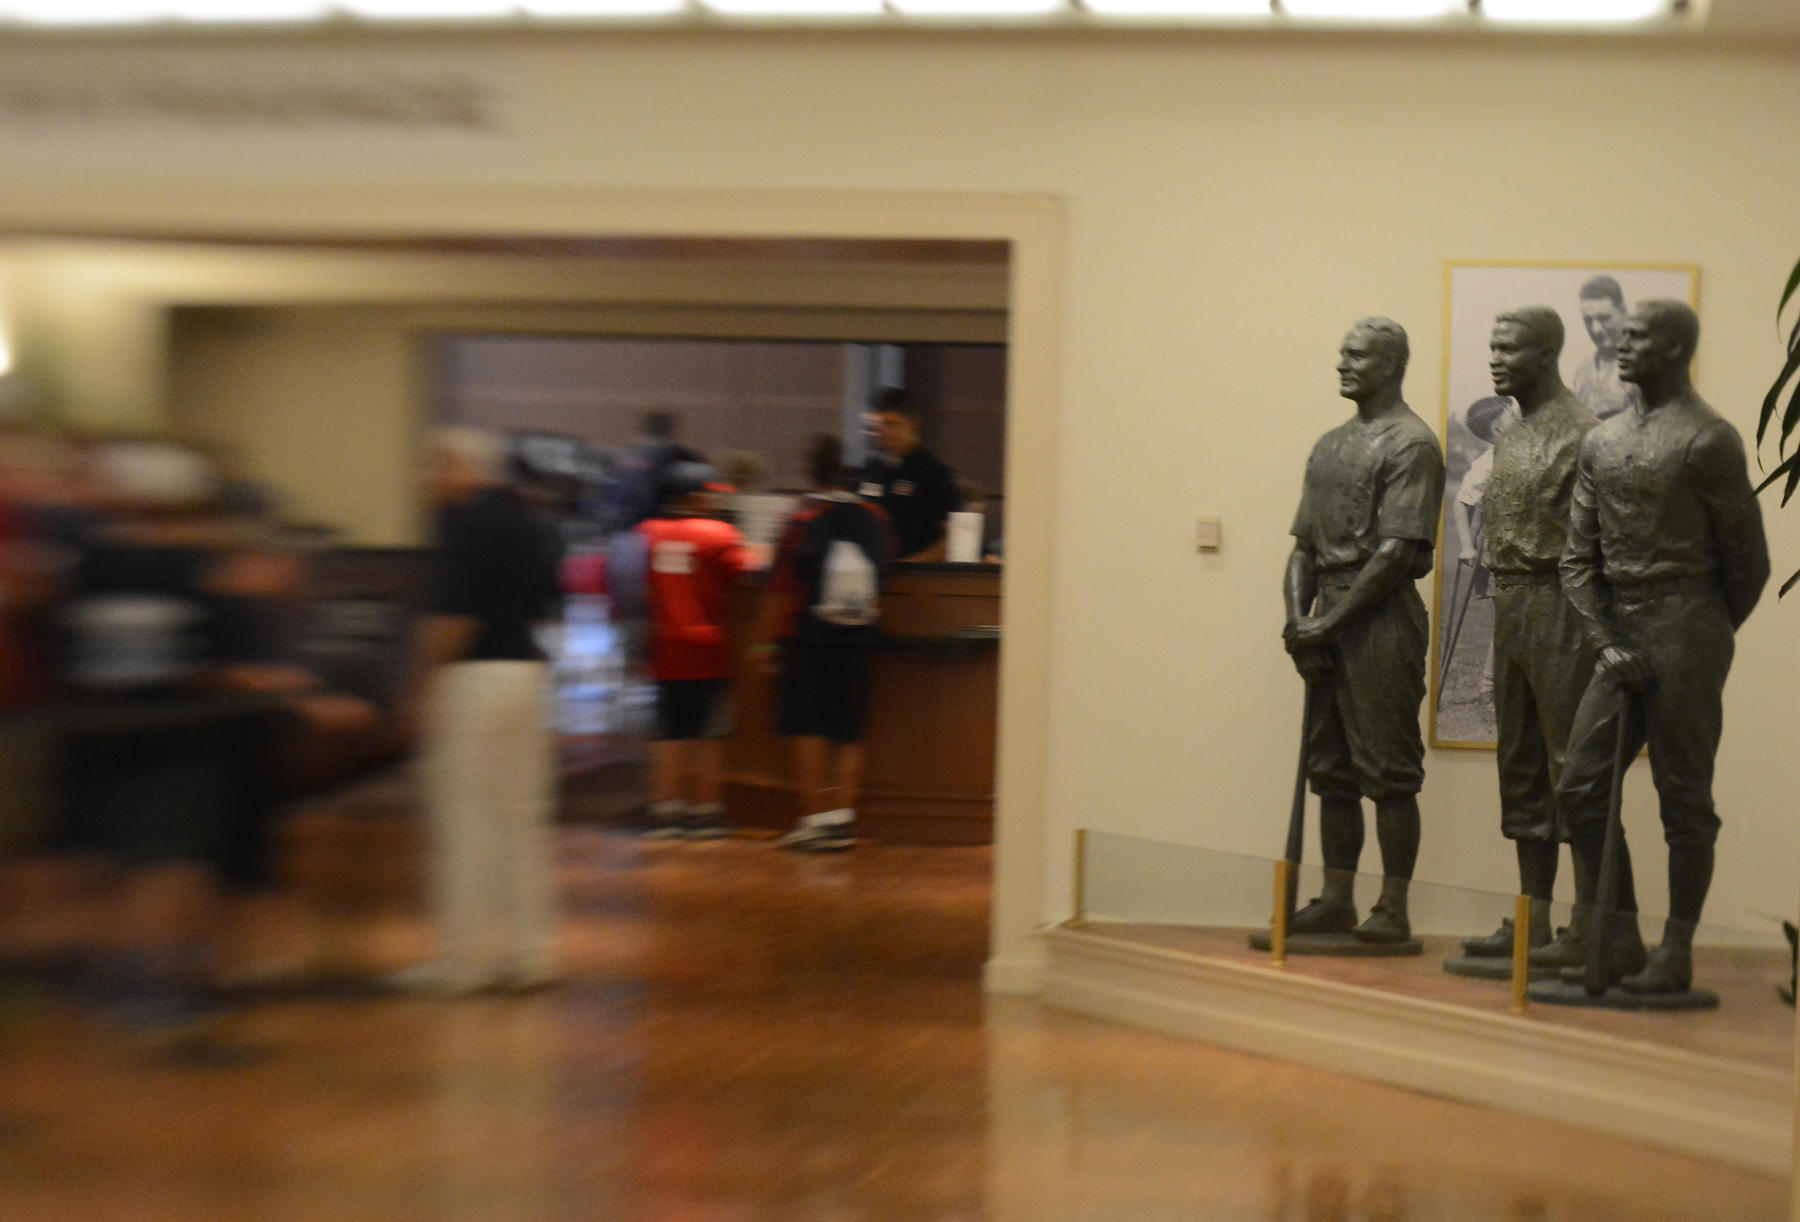 Hall of Fame lobby and ticket booth (Milo Stewart Jr./National Baseball Hall of Fame)